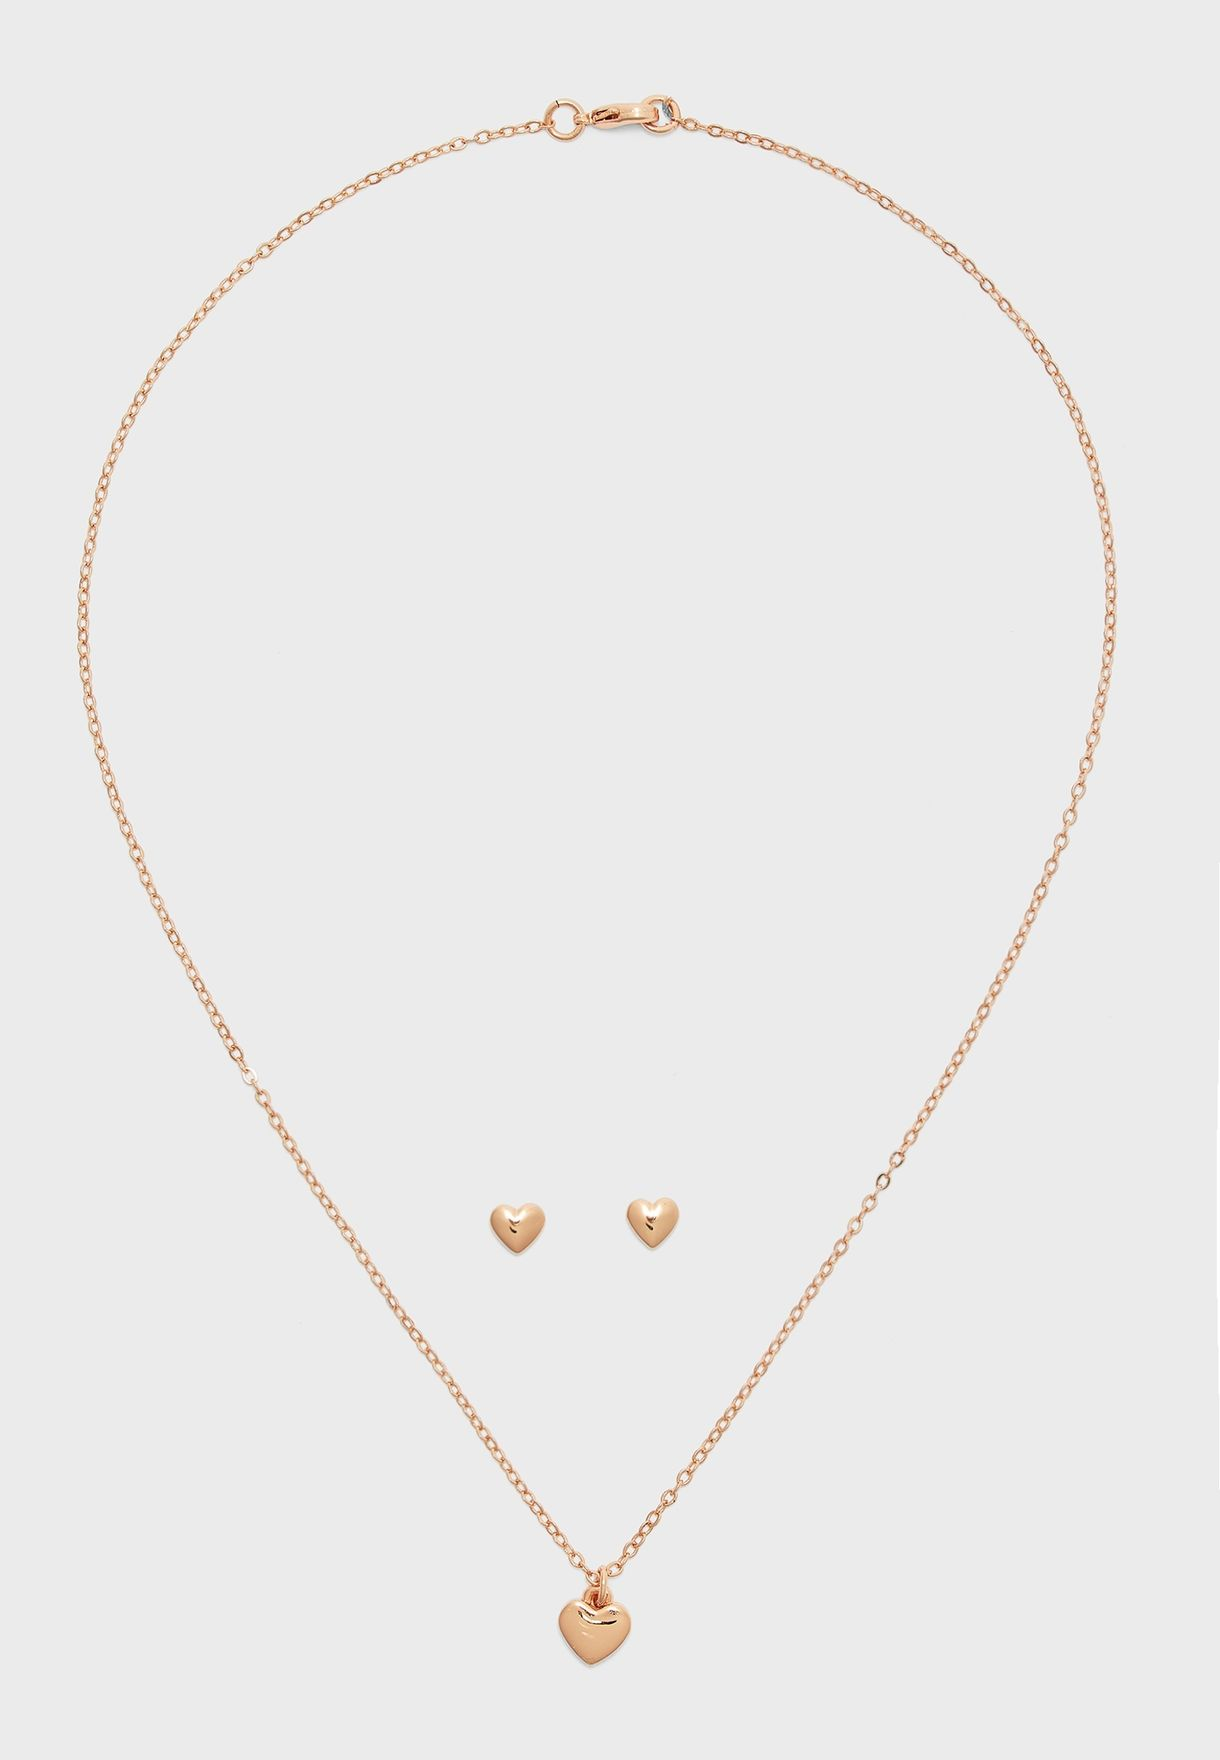 Amoria Sweetheart Necklace+Earrings Set